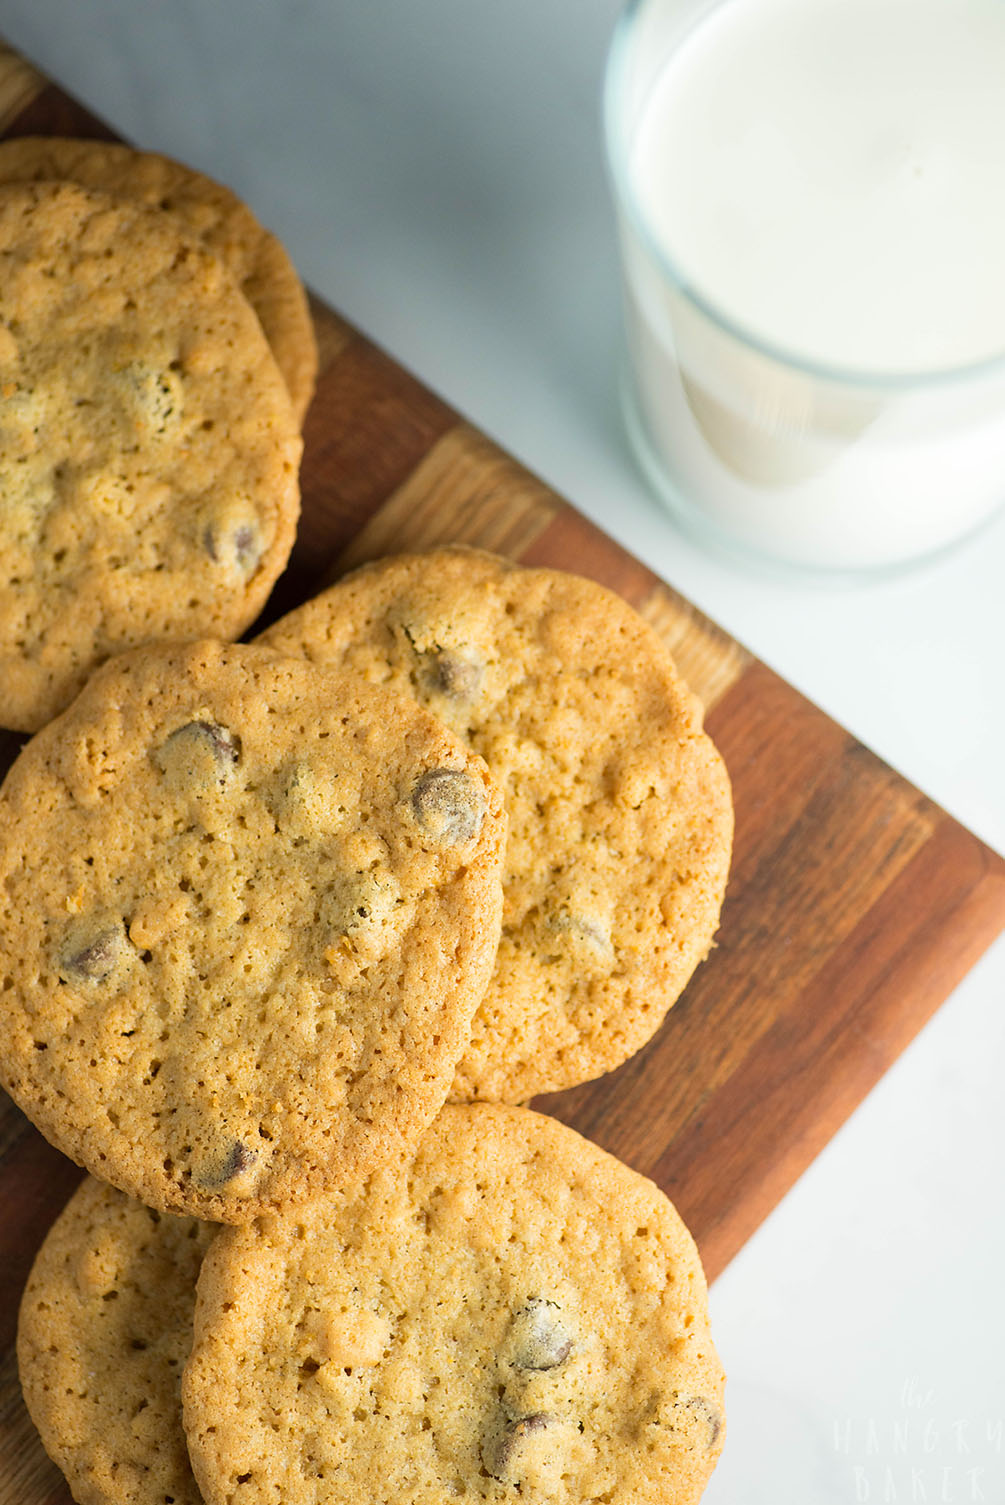 Crunchy and Chewy Chocolate Chip Cookies - the perfect balance of crunchy AND chewy! These thinner chocolate chip cookies are super addictive!